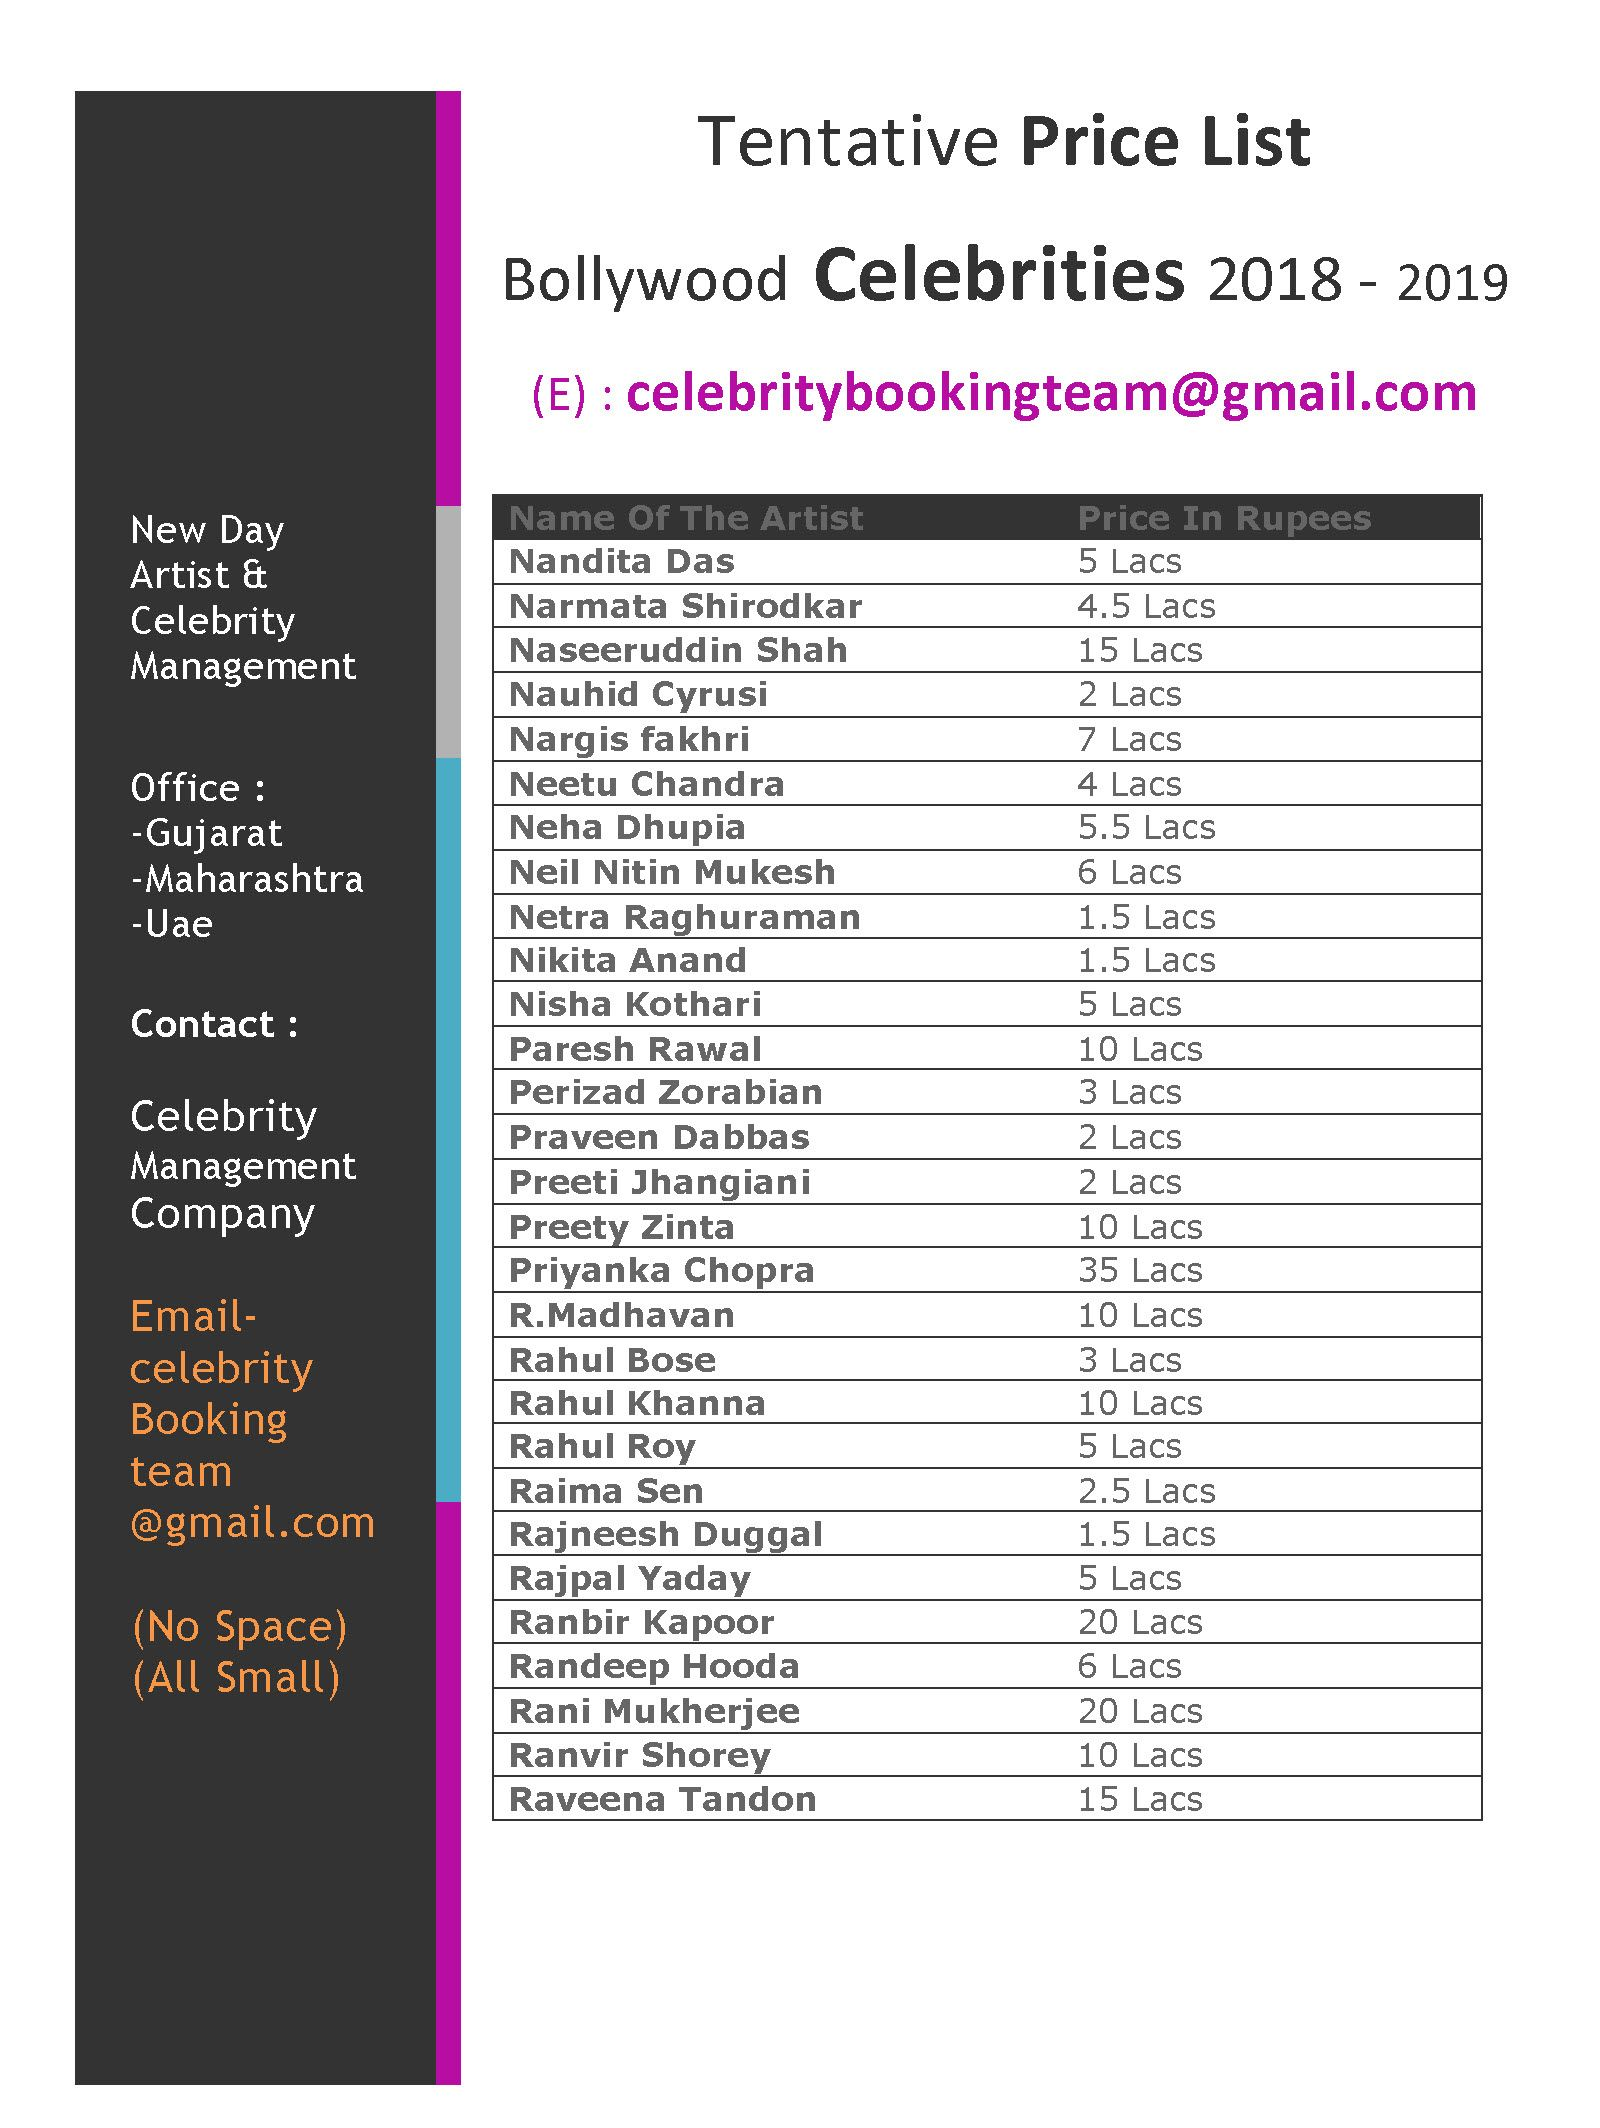 for your event, bollywood celebrity booking, contract, email